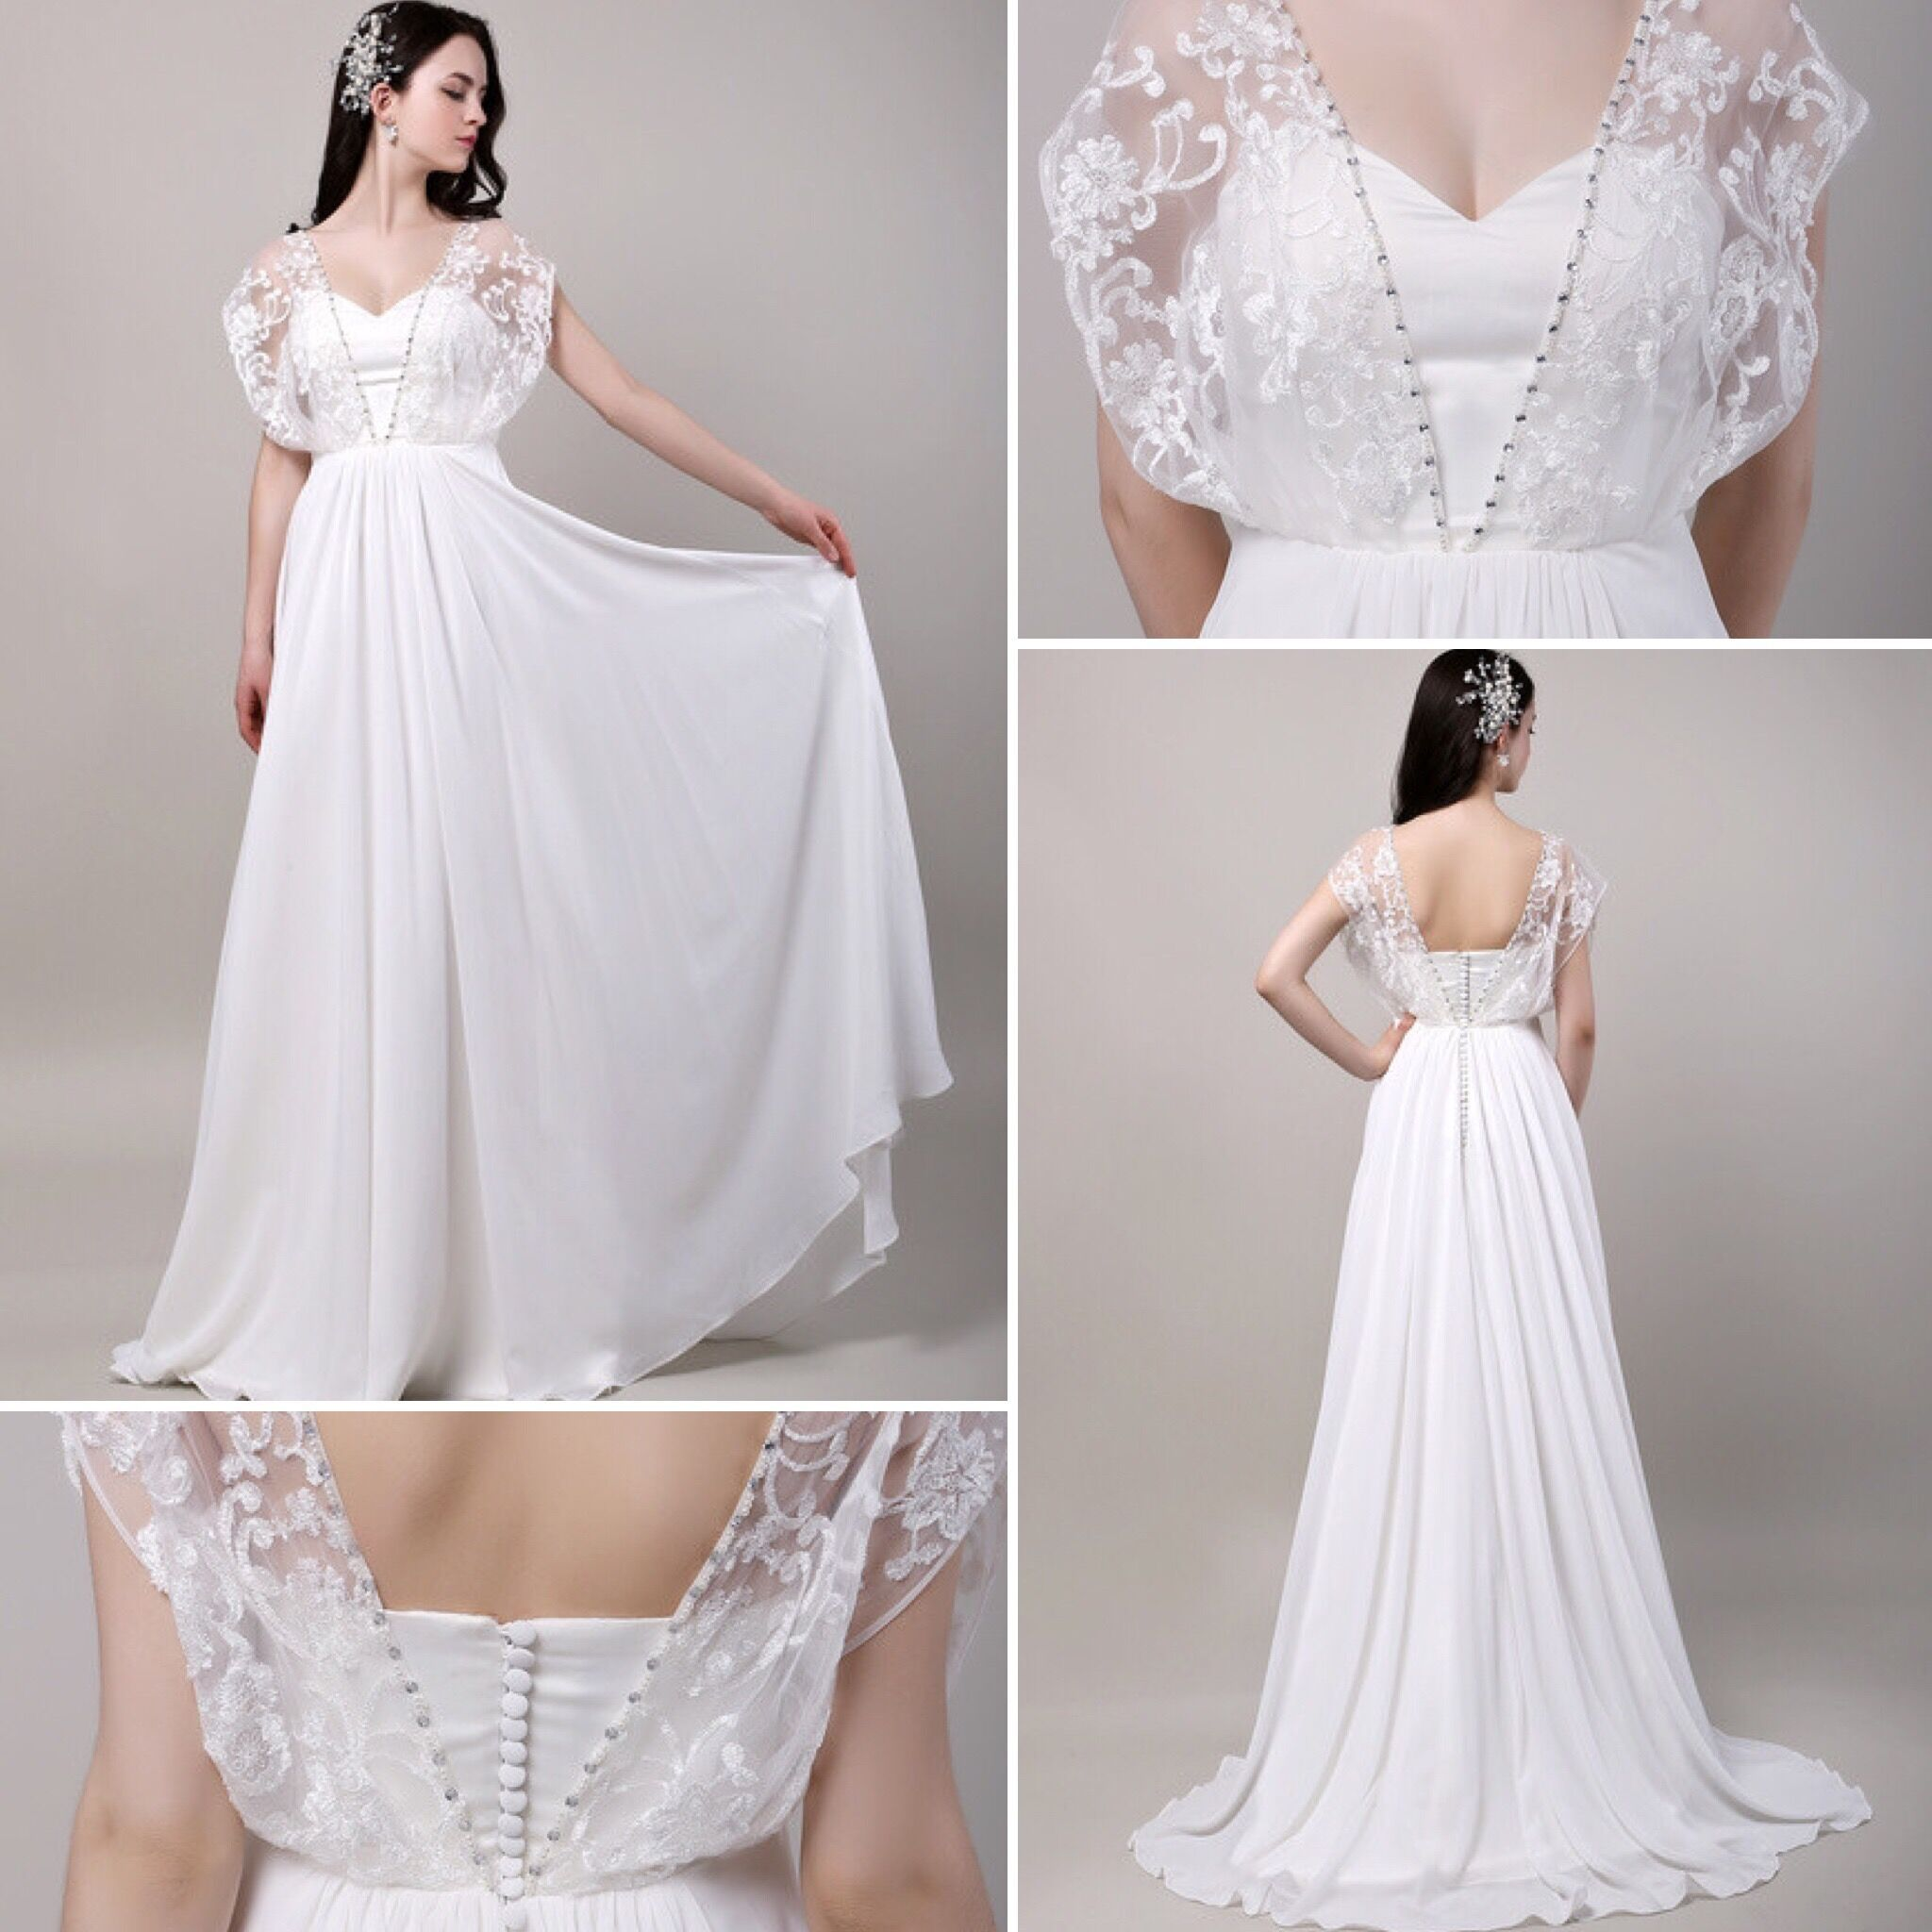 Boho Wedding Dress Sweatheart Butterfly Lace Sleeves Chiffon